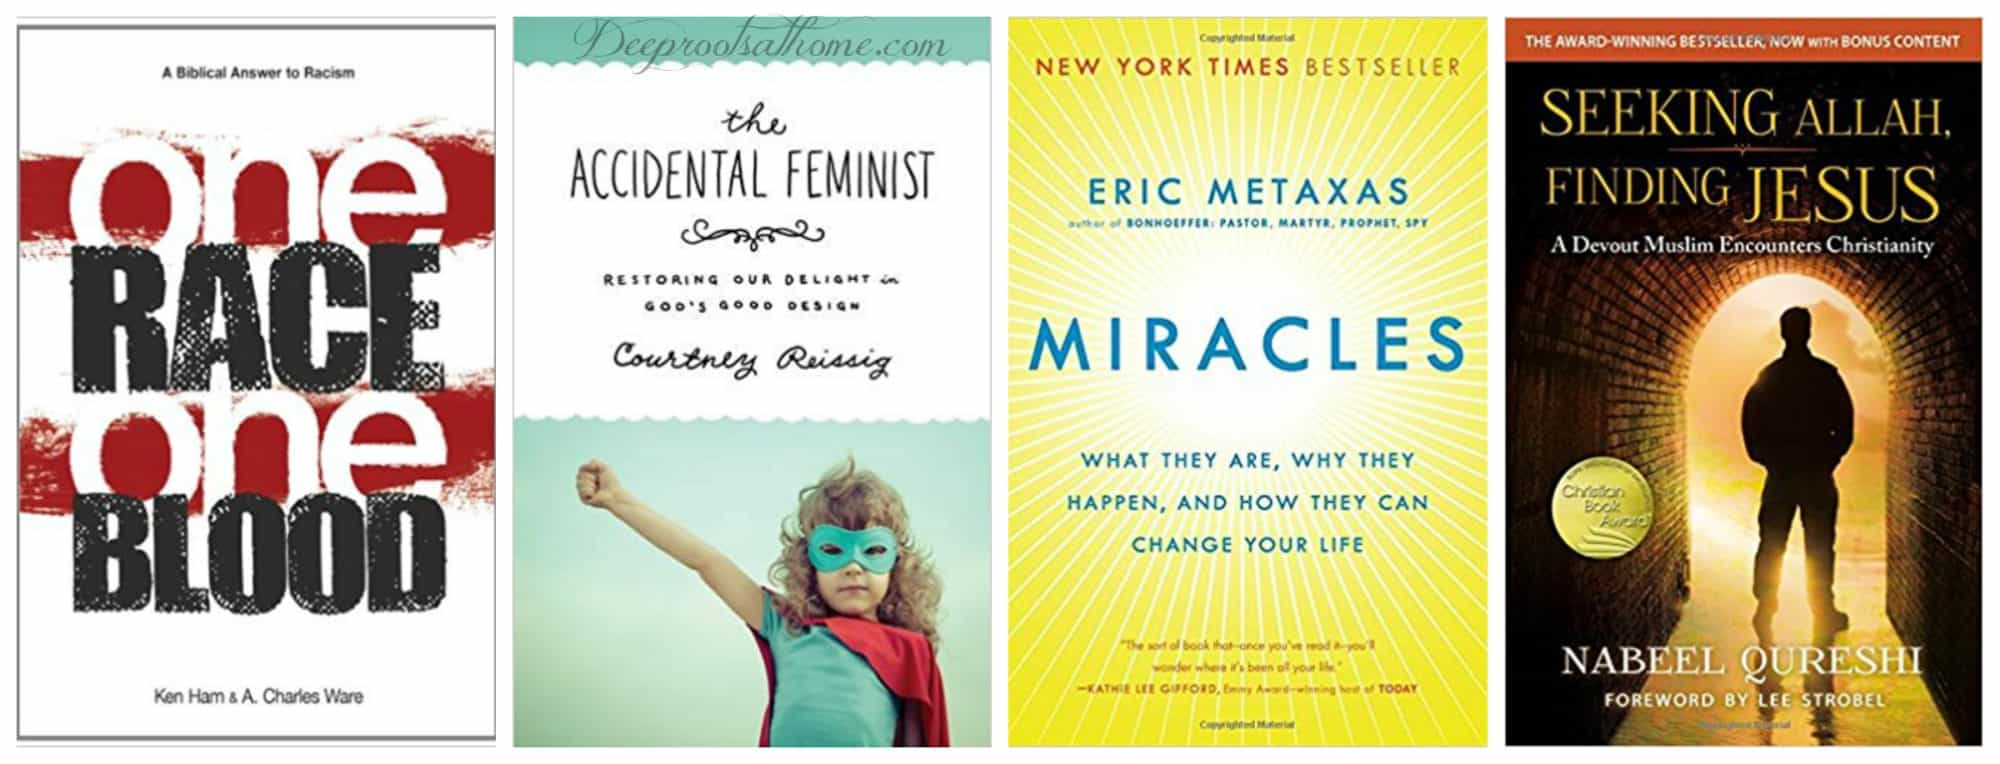 2018 Reading List: New and {Worthy To Be Revisited} Older Books. 4 book covers: The Accidental Feminist by Courtney Reissig; Seeking Allah, Finding God by Nabeel Qureshi; Miracles by Eric Metaxas; One Race, One Blood by Dr, Charles Ware.